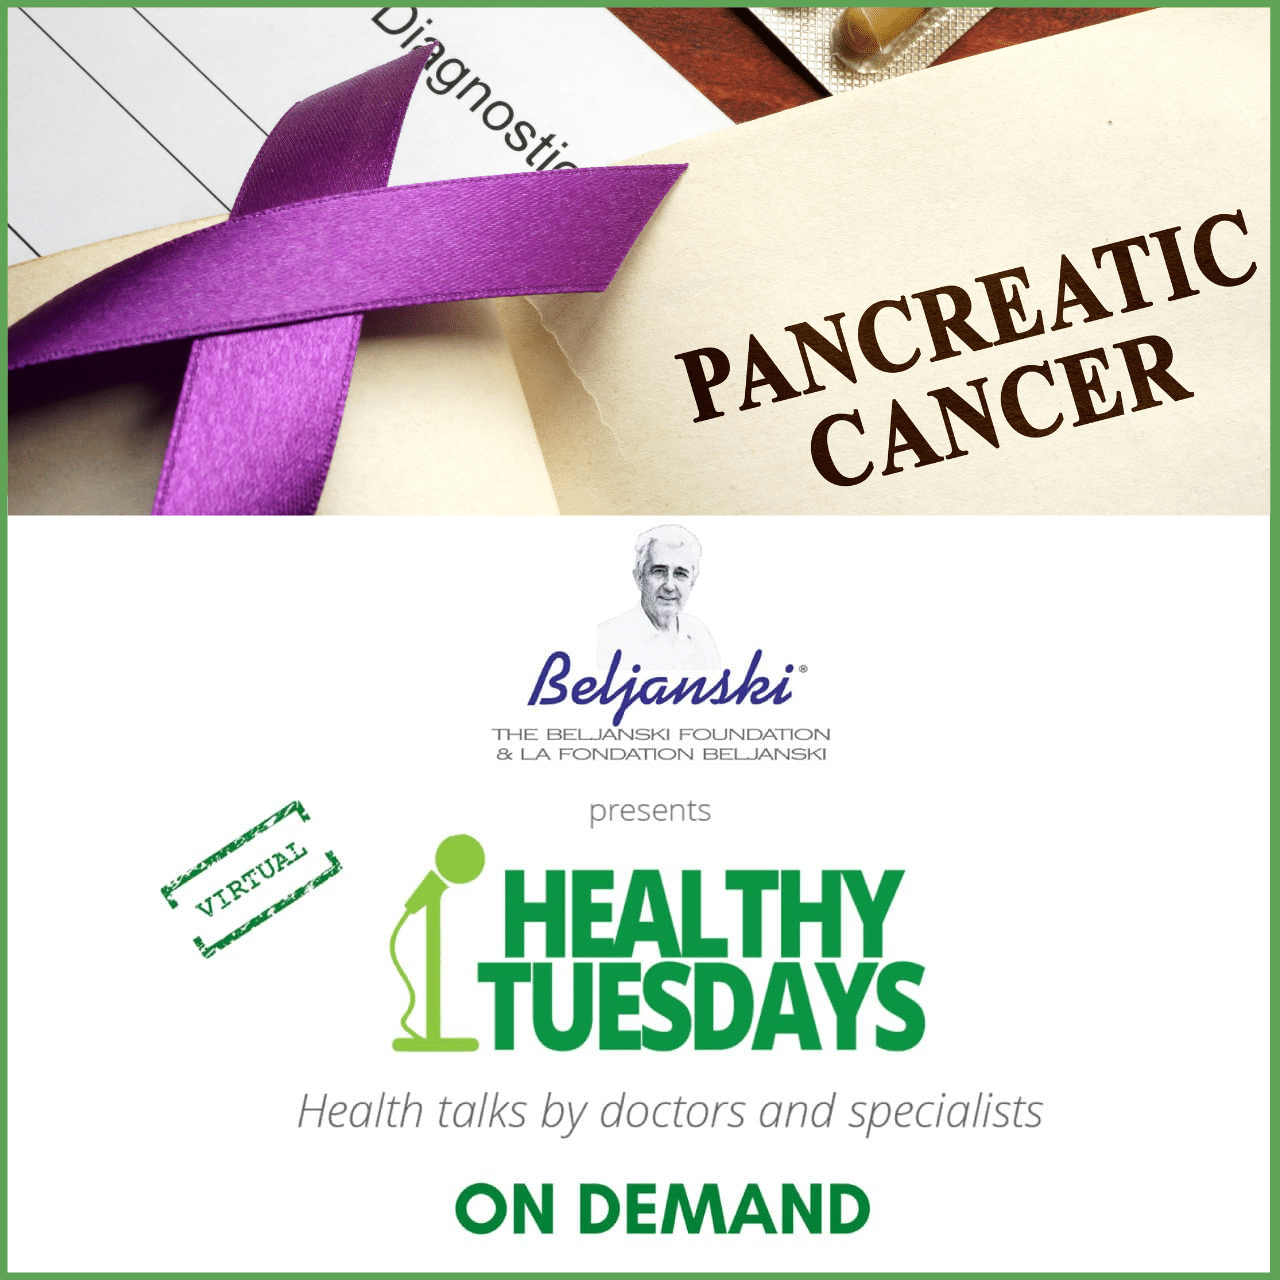 pancreatic cancer on demand event